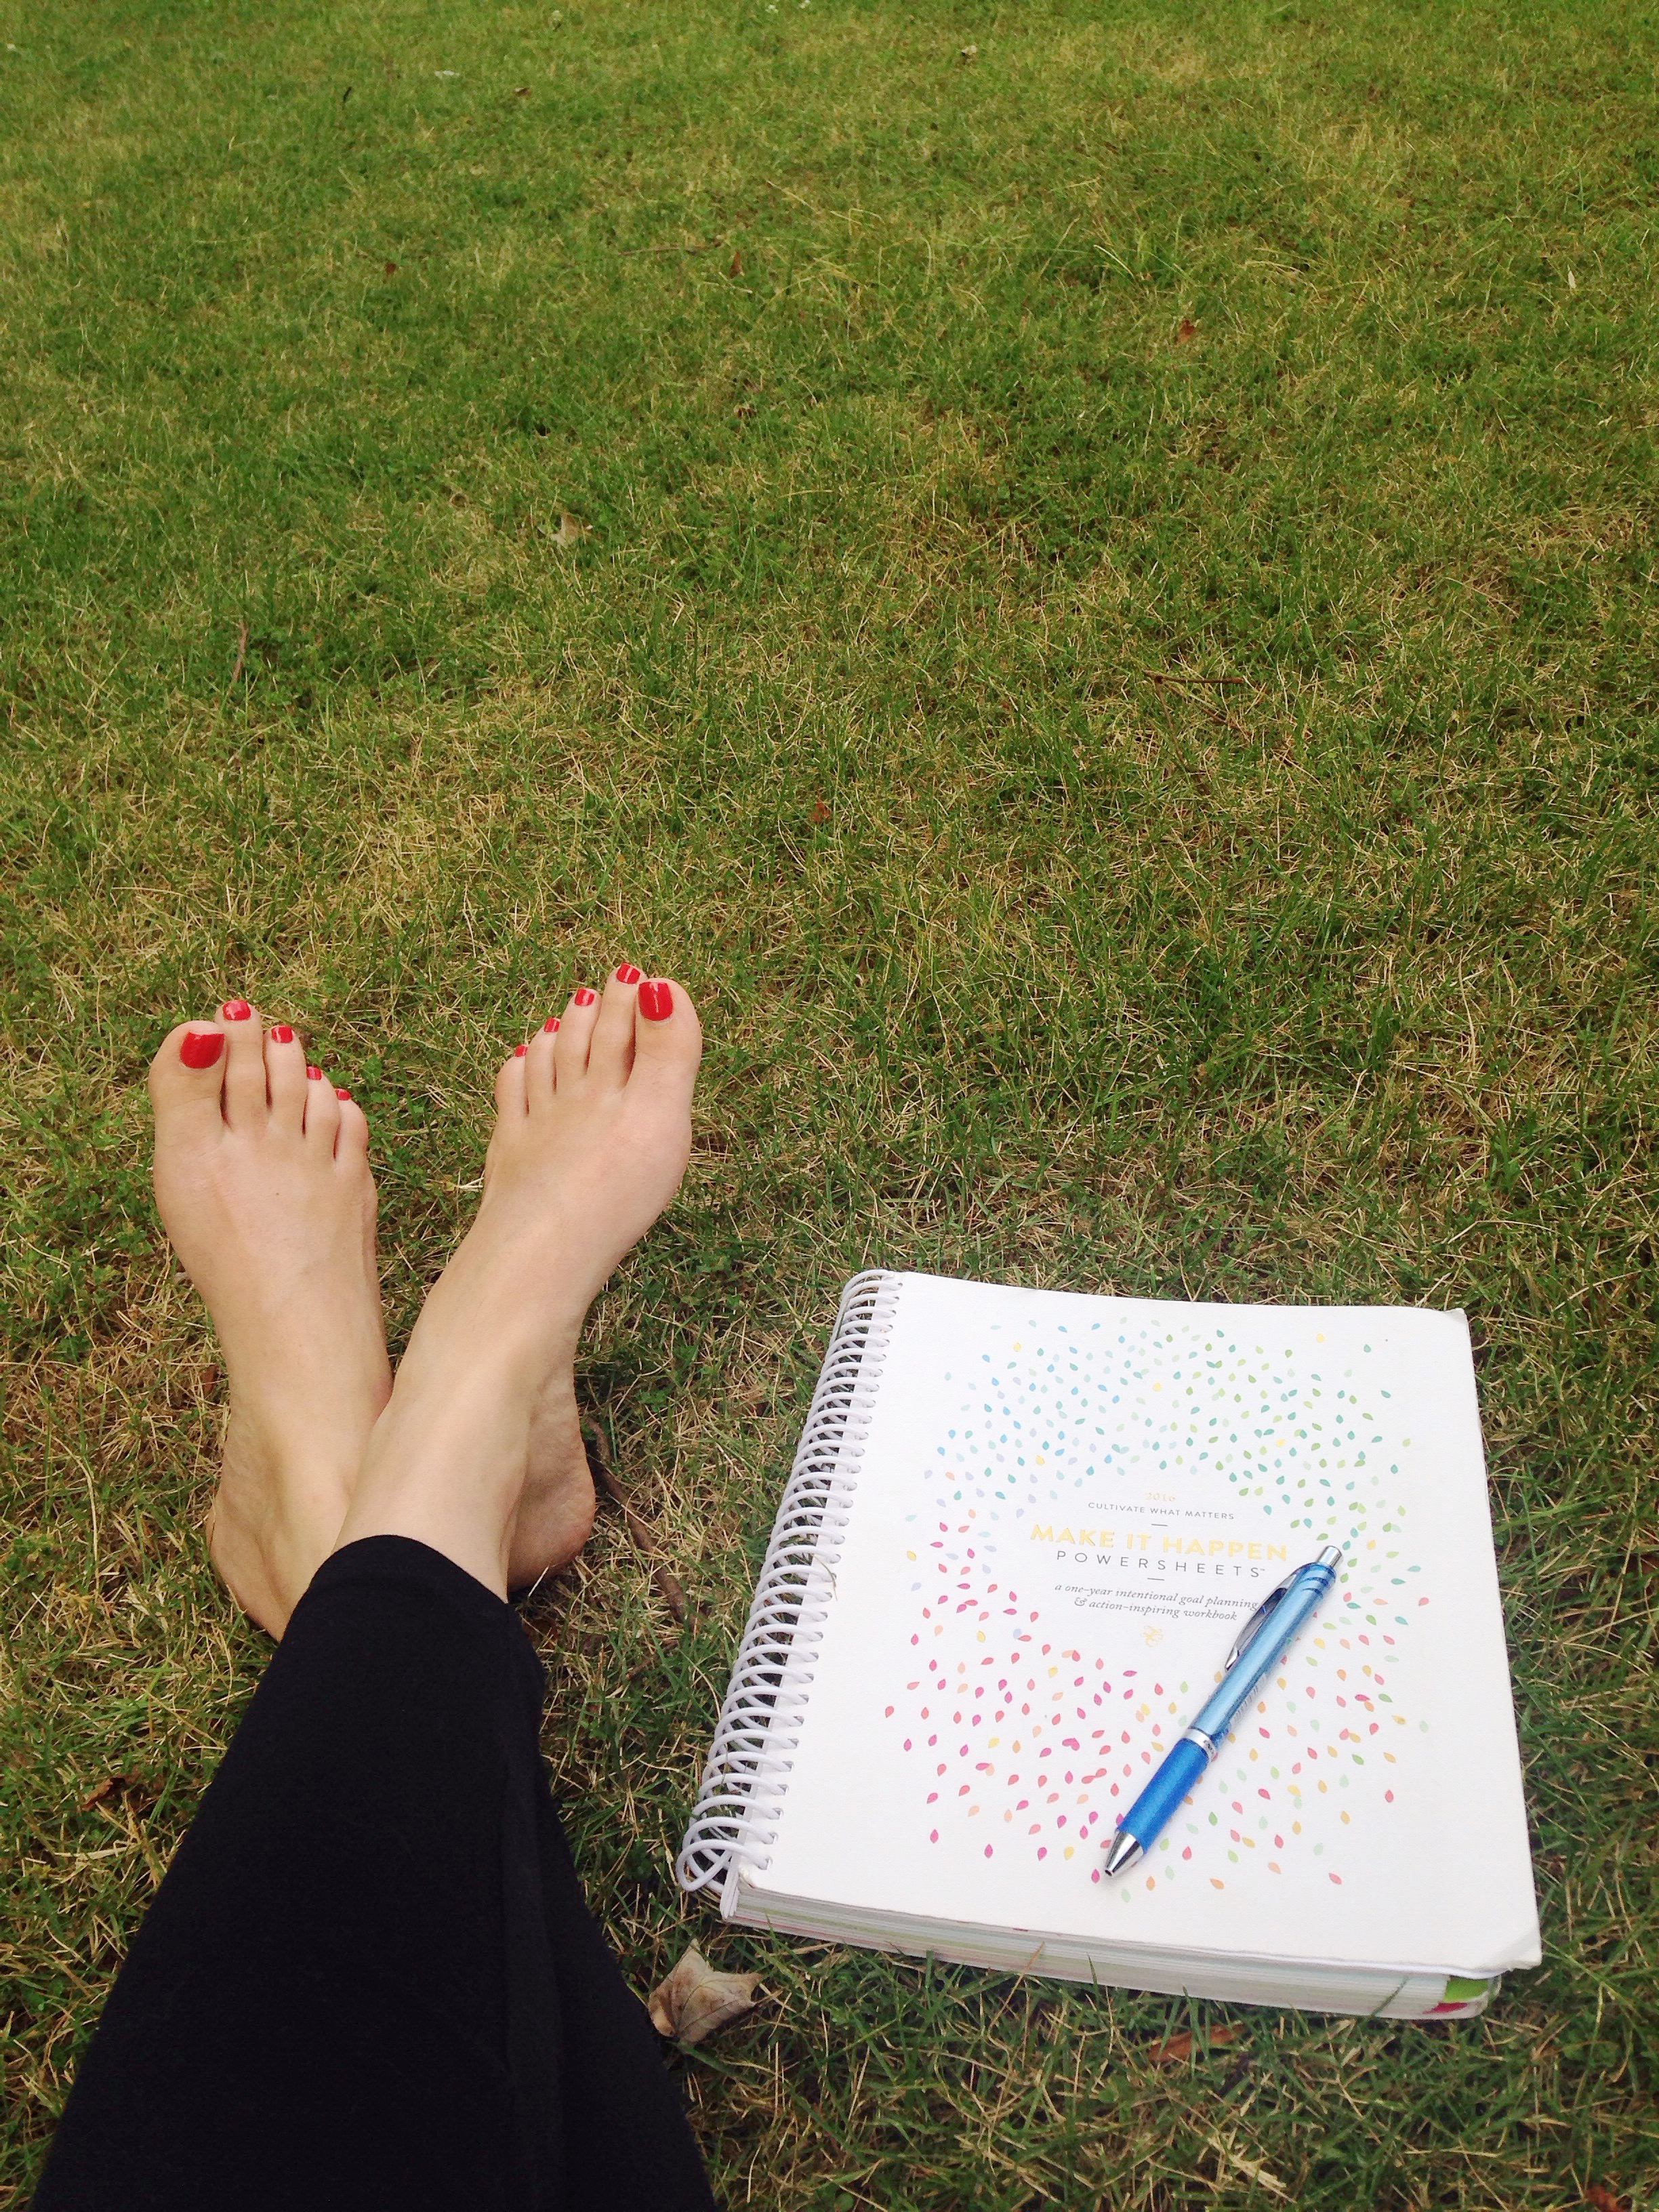 I love sitting on a blanket in my front yard to work through my goals. My mind feels so free outside, and it's easier for me to focus.